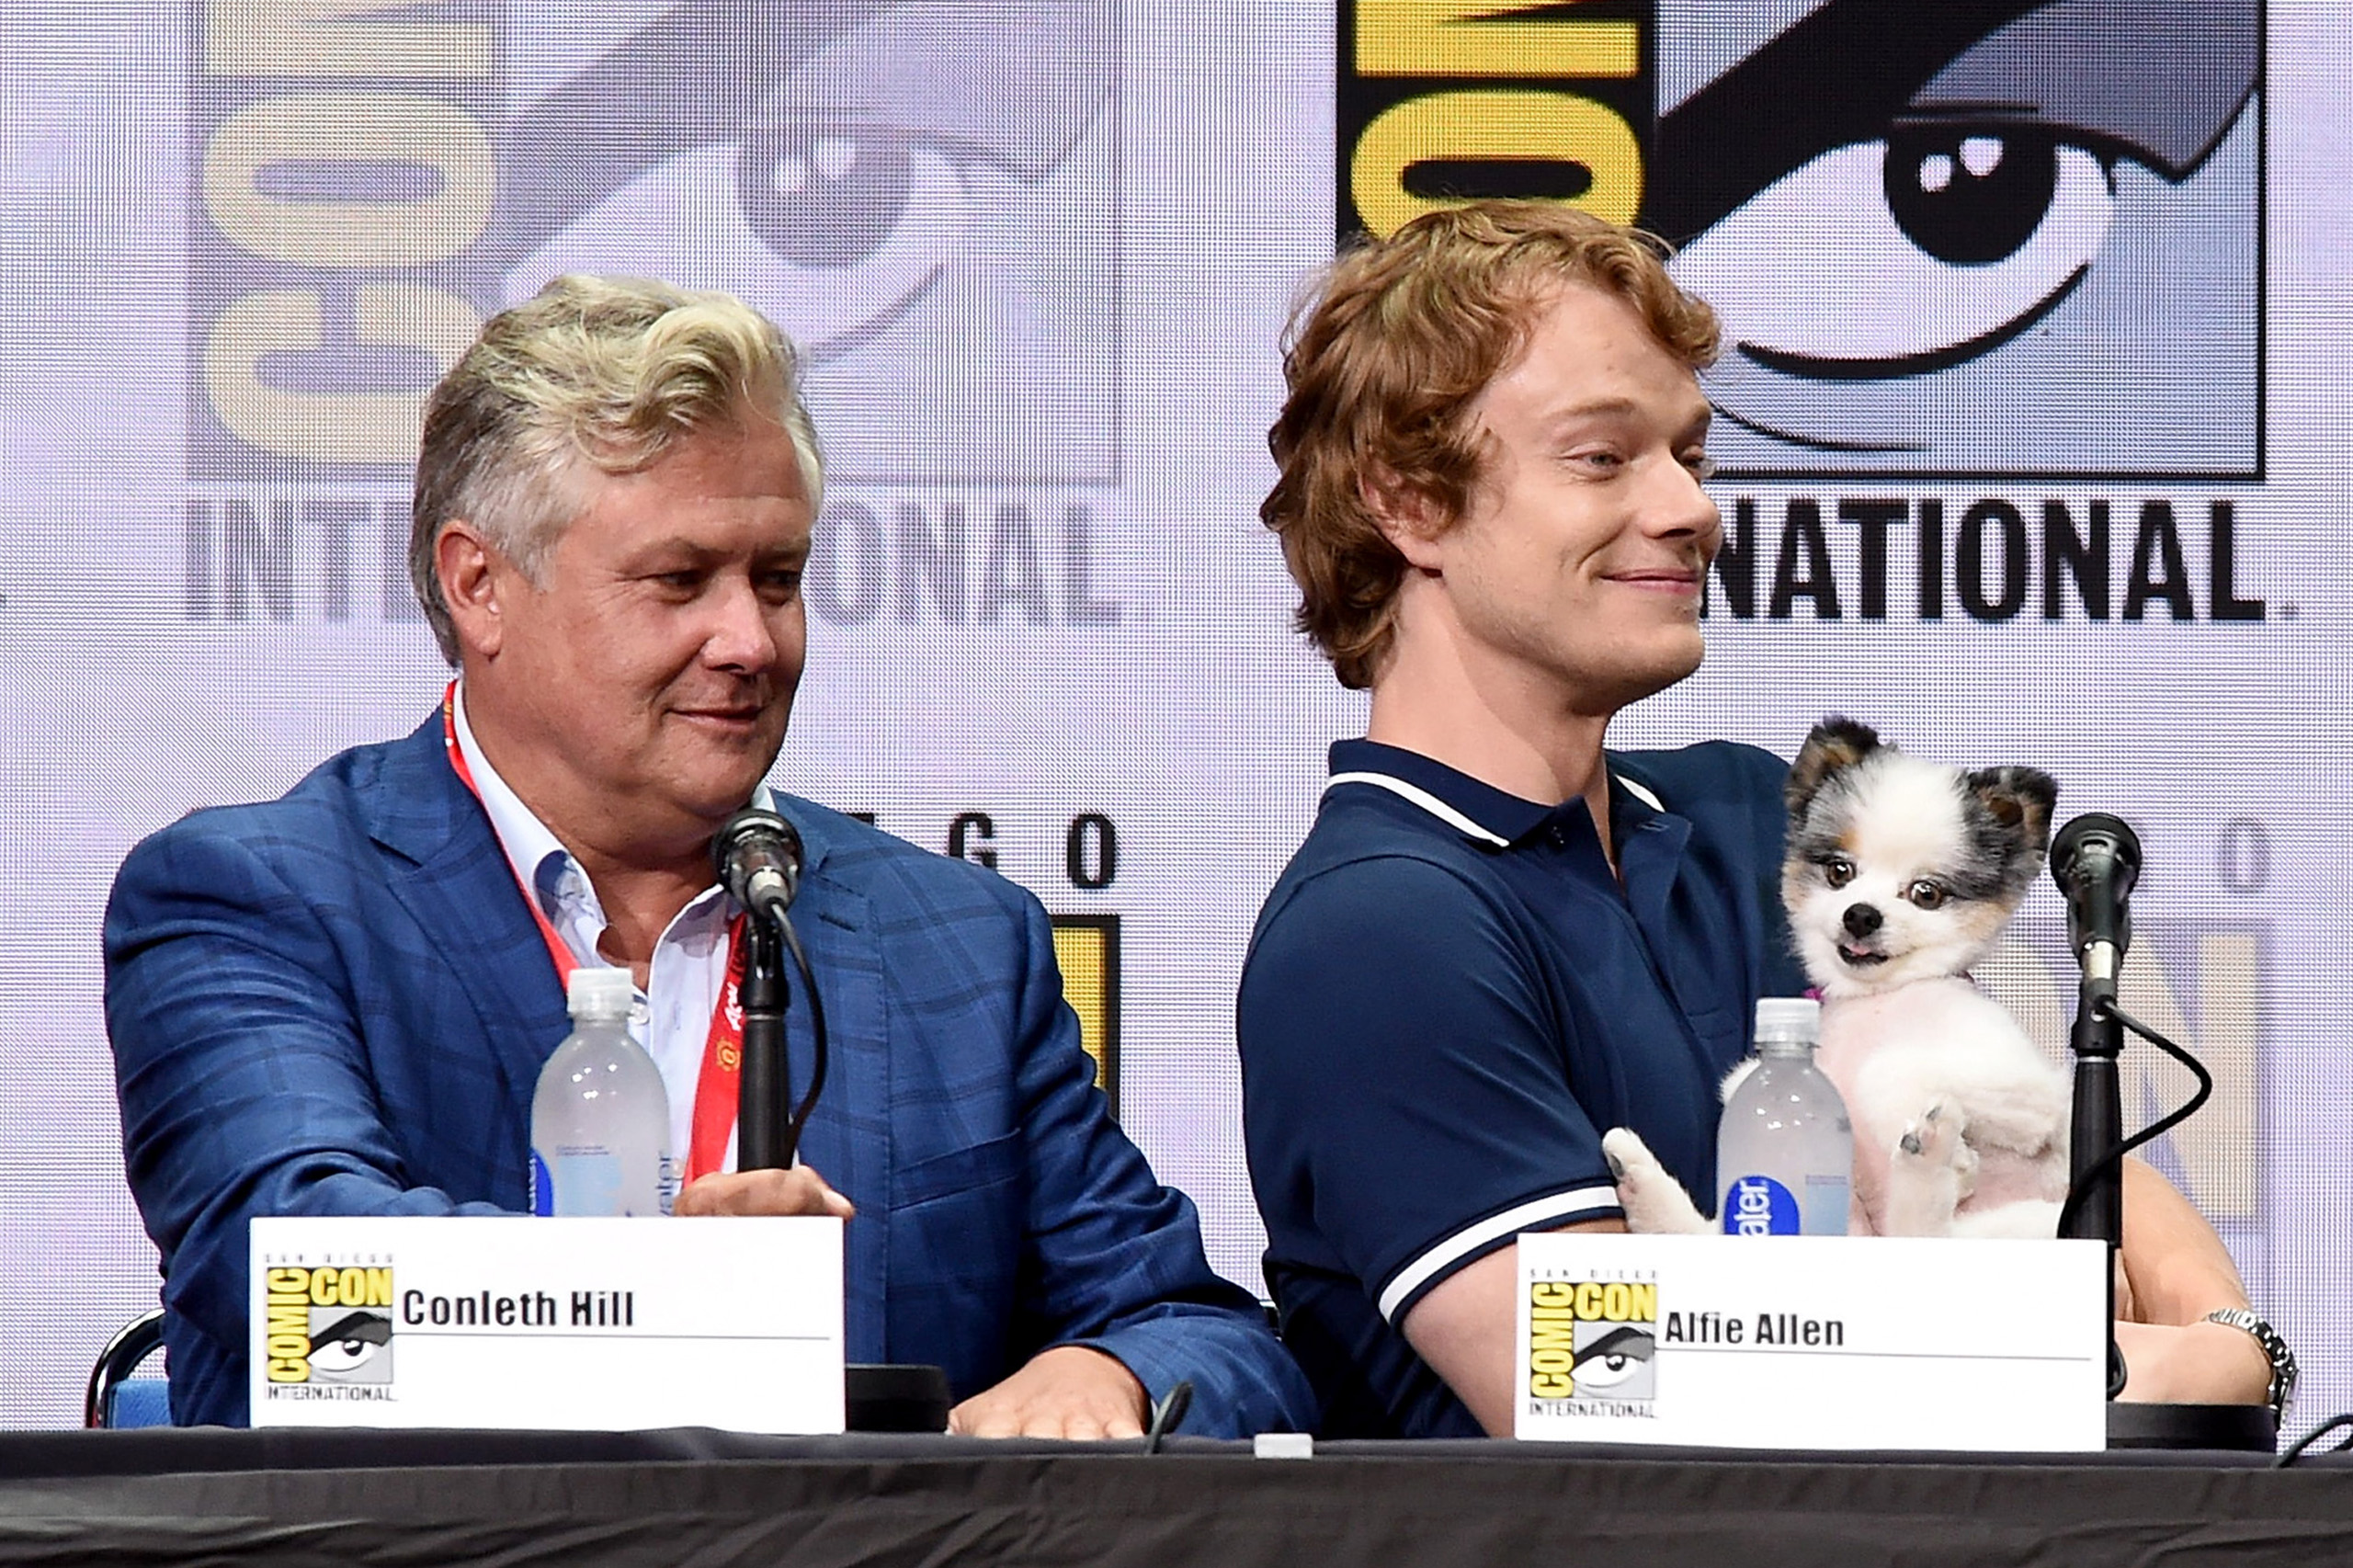 Actors Conleth Hill and Alfie Allen speak onstage at Comic-Con International 2017  Game Of Thrones  panel And Q+A Session at San Diego Convention Center on July 21, 2017 in San Diego.